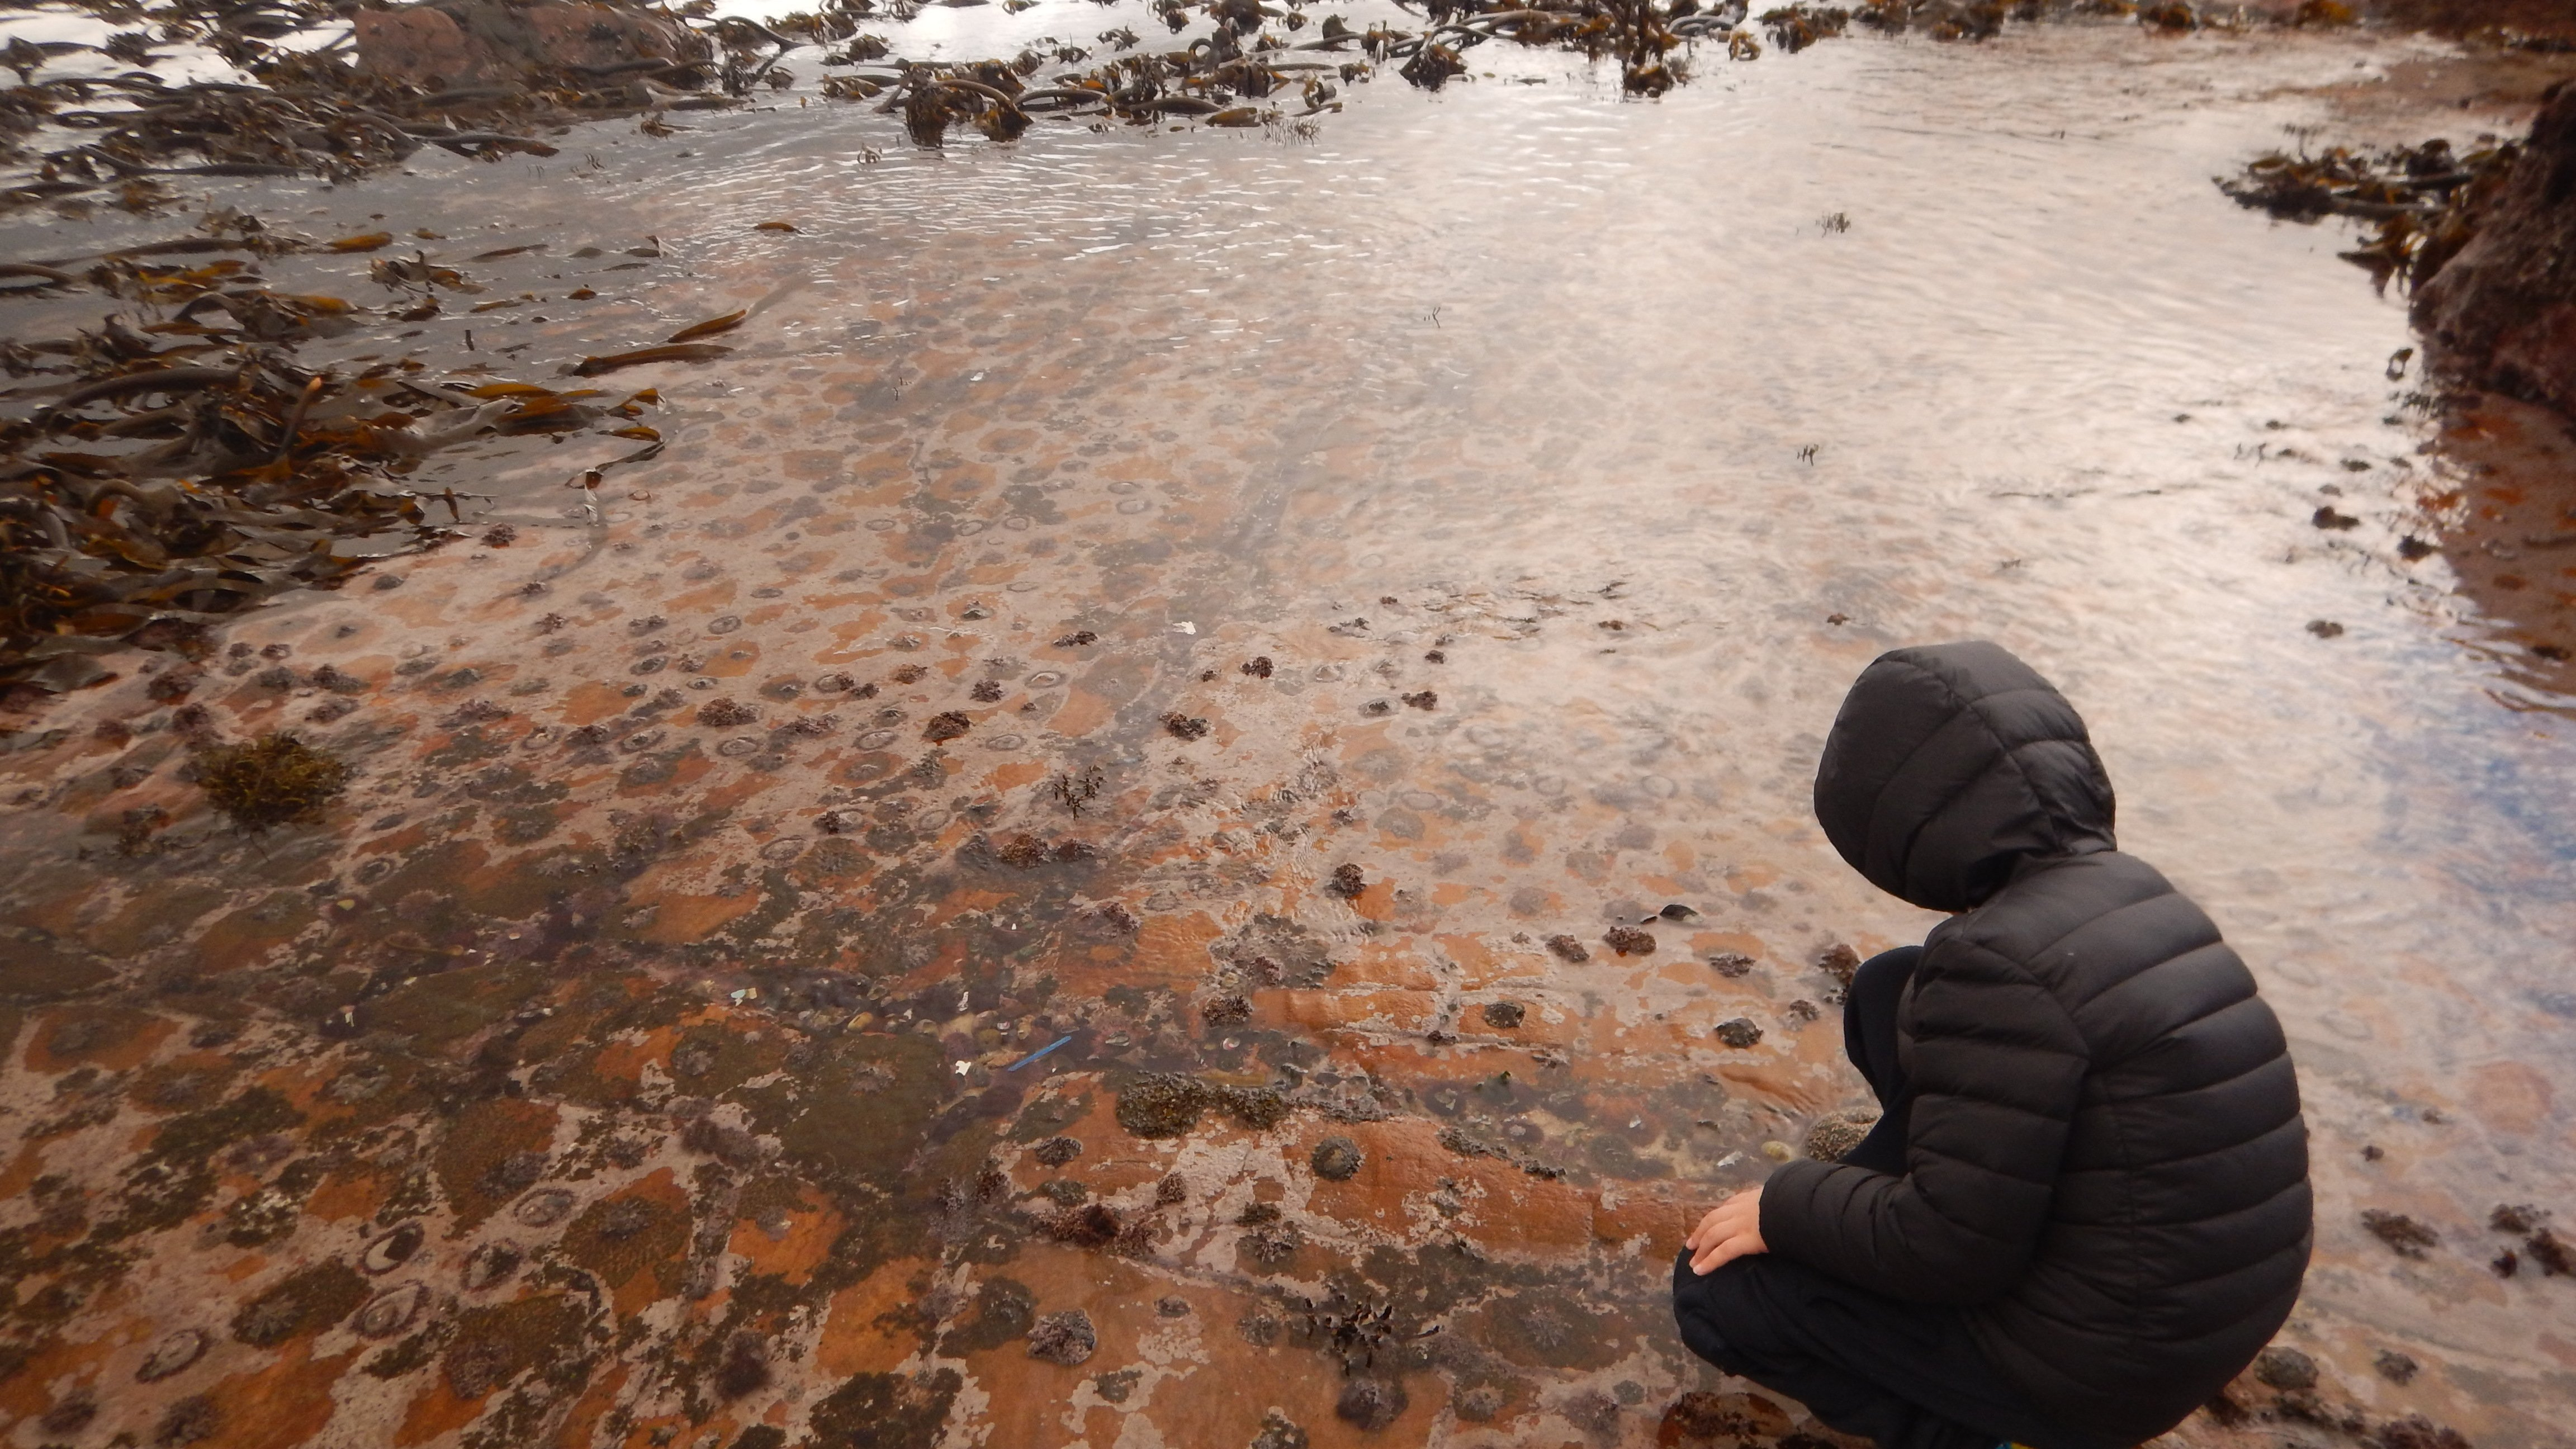 Quietly surveying limpet city